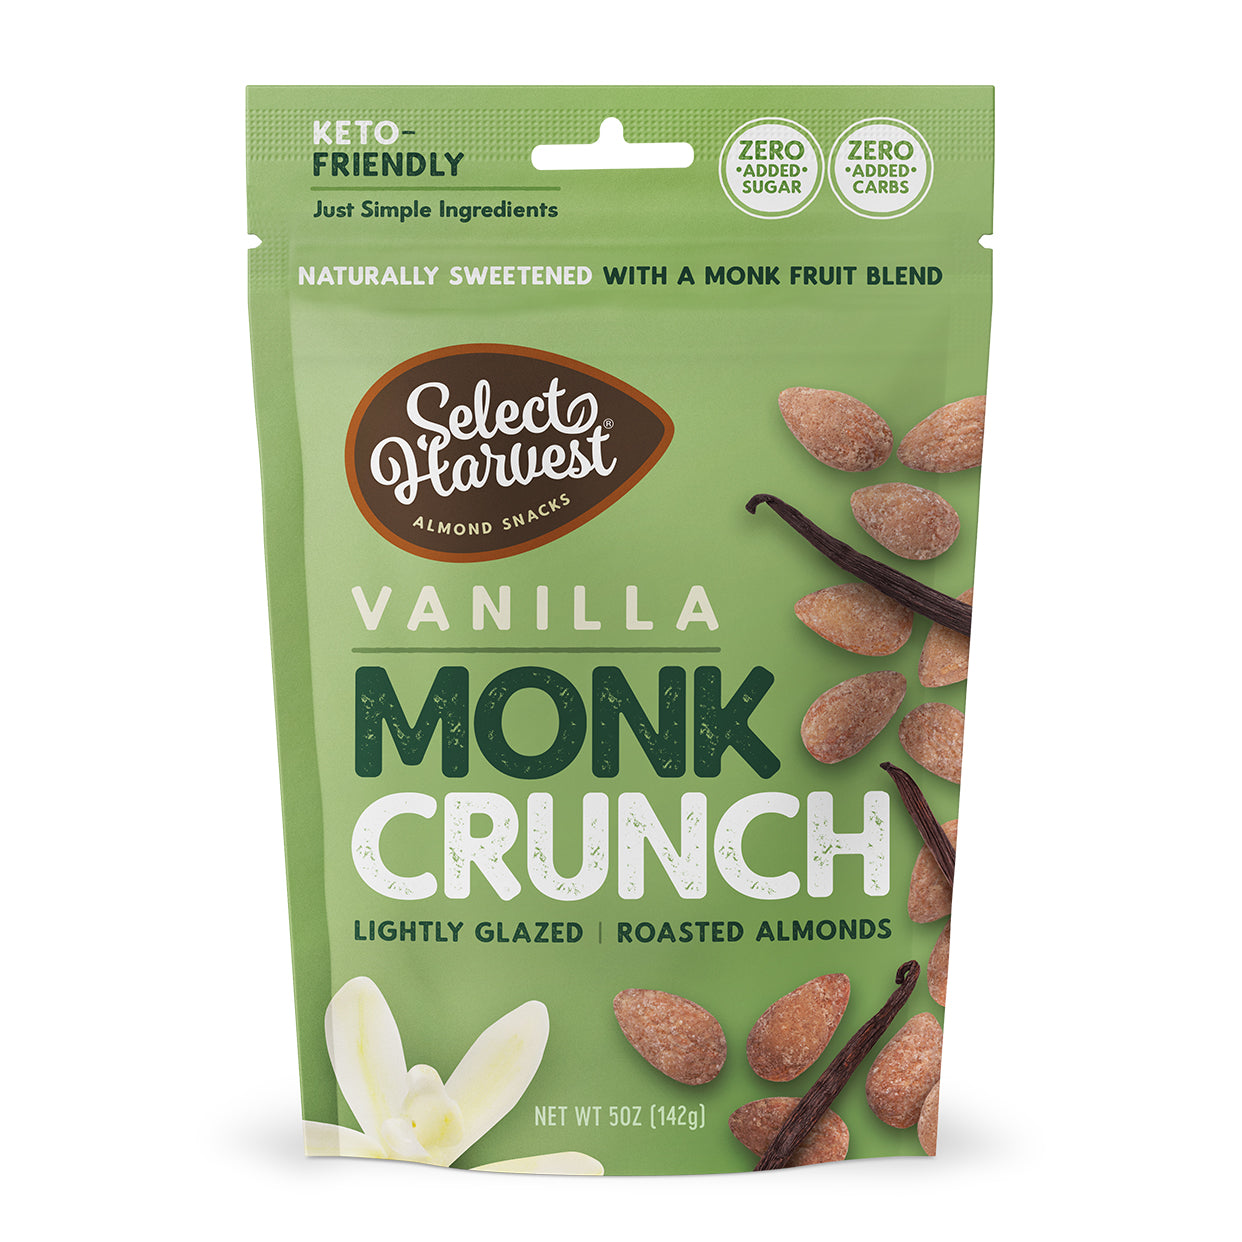 Vanilla Monk Crunch